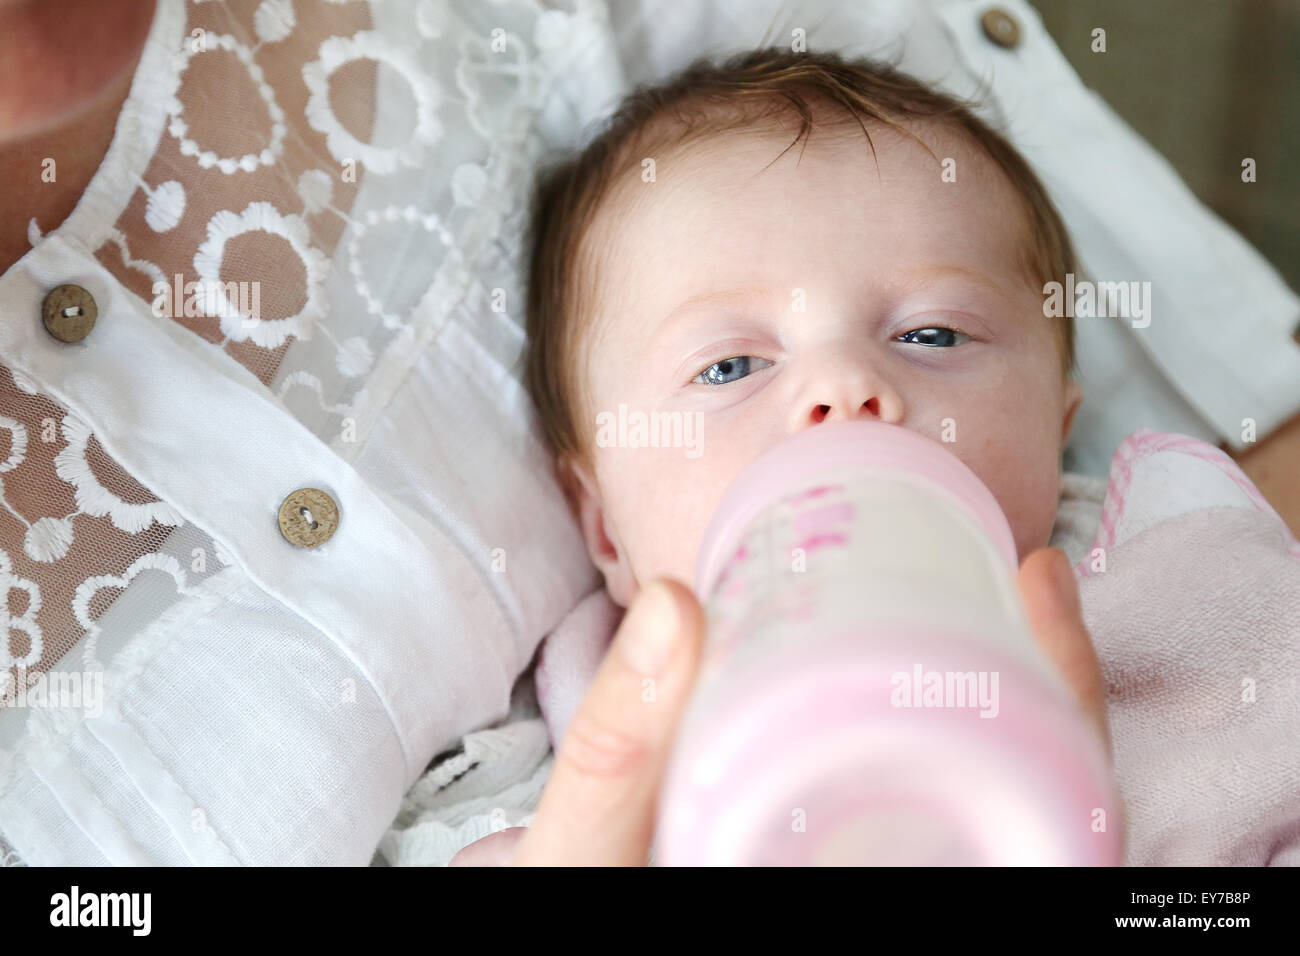 a-very-young-baby-being-fed-milk-from-a-